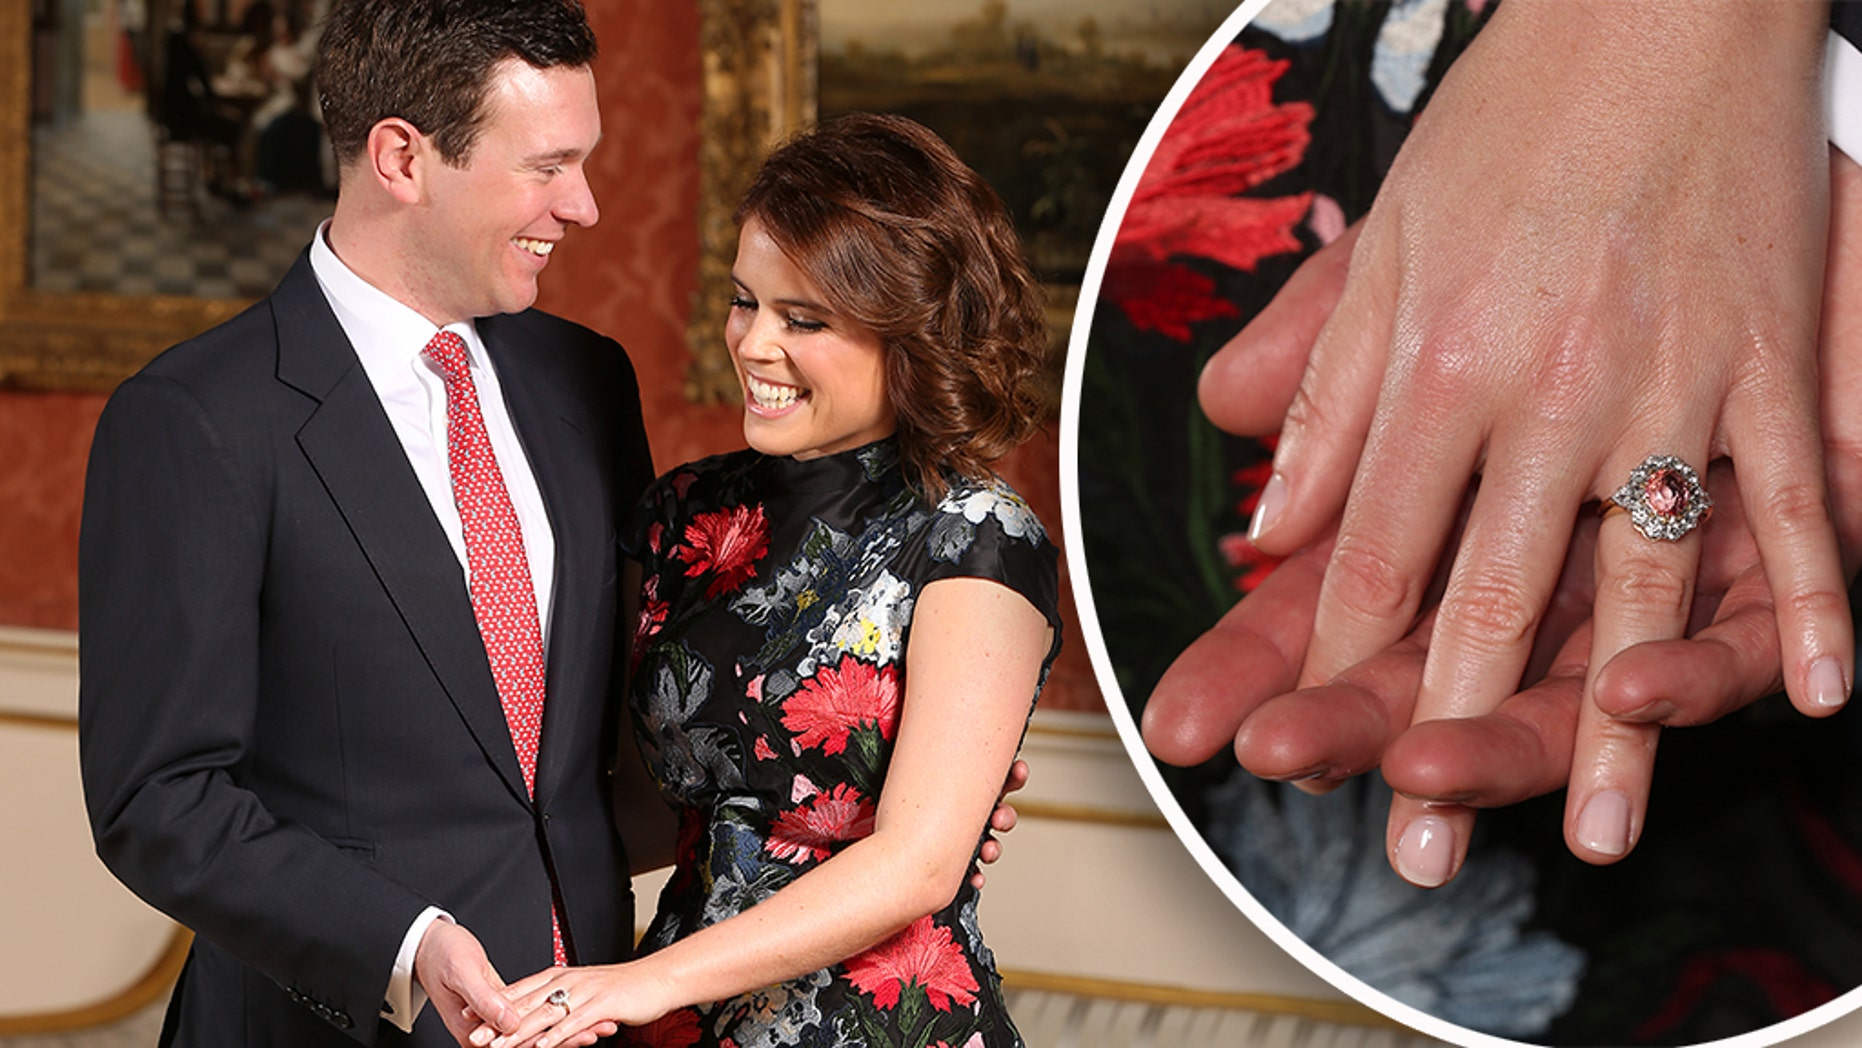 Princess Eugenie and Jack Brooksbank are due to marry on Oct. 12 at St. George's Chapel at Windsor Castle in Windsor England